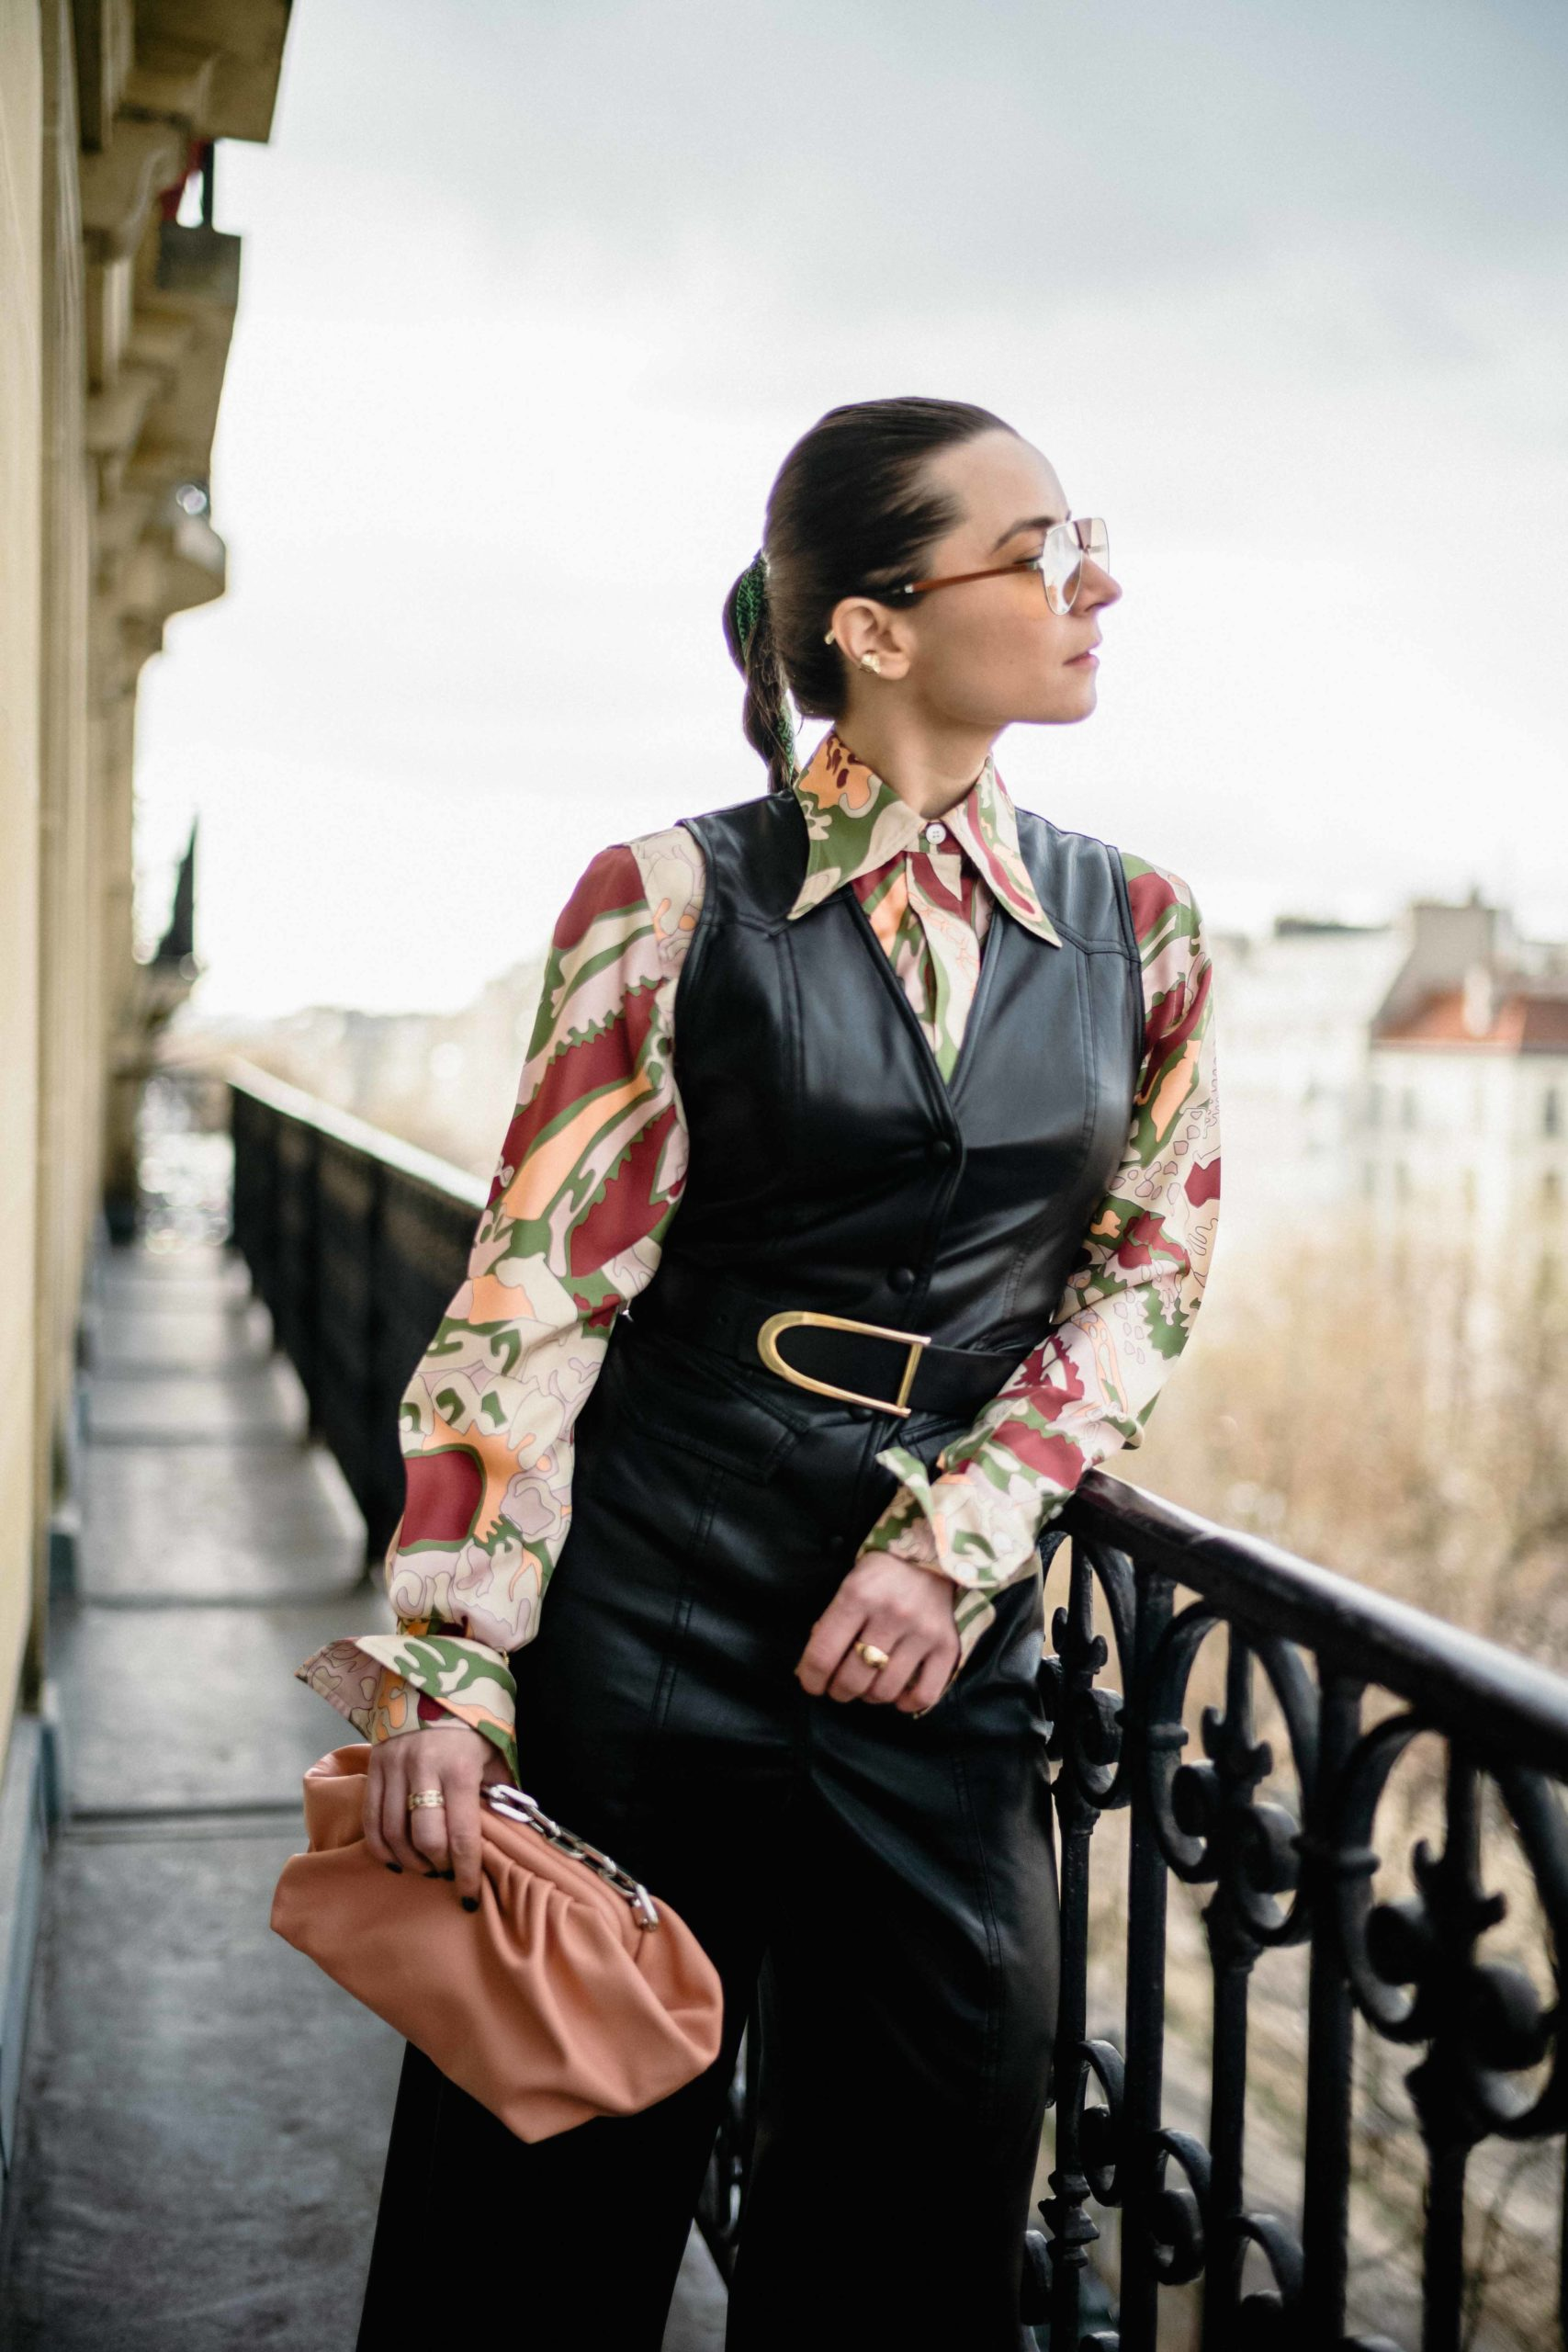 70's vibes paris fashion week street style 2020 AW march 2020 julia comil nanushka victoria beckham farfetch